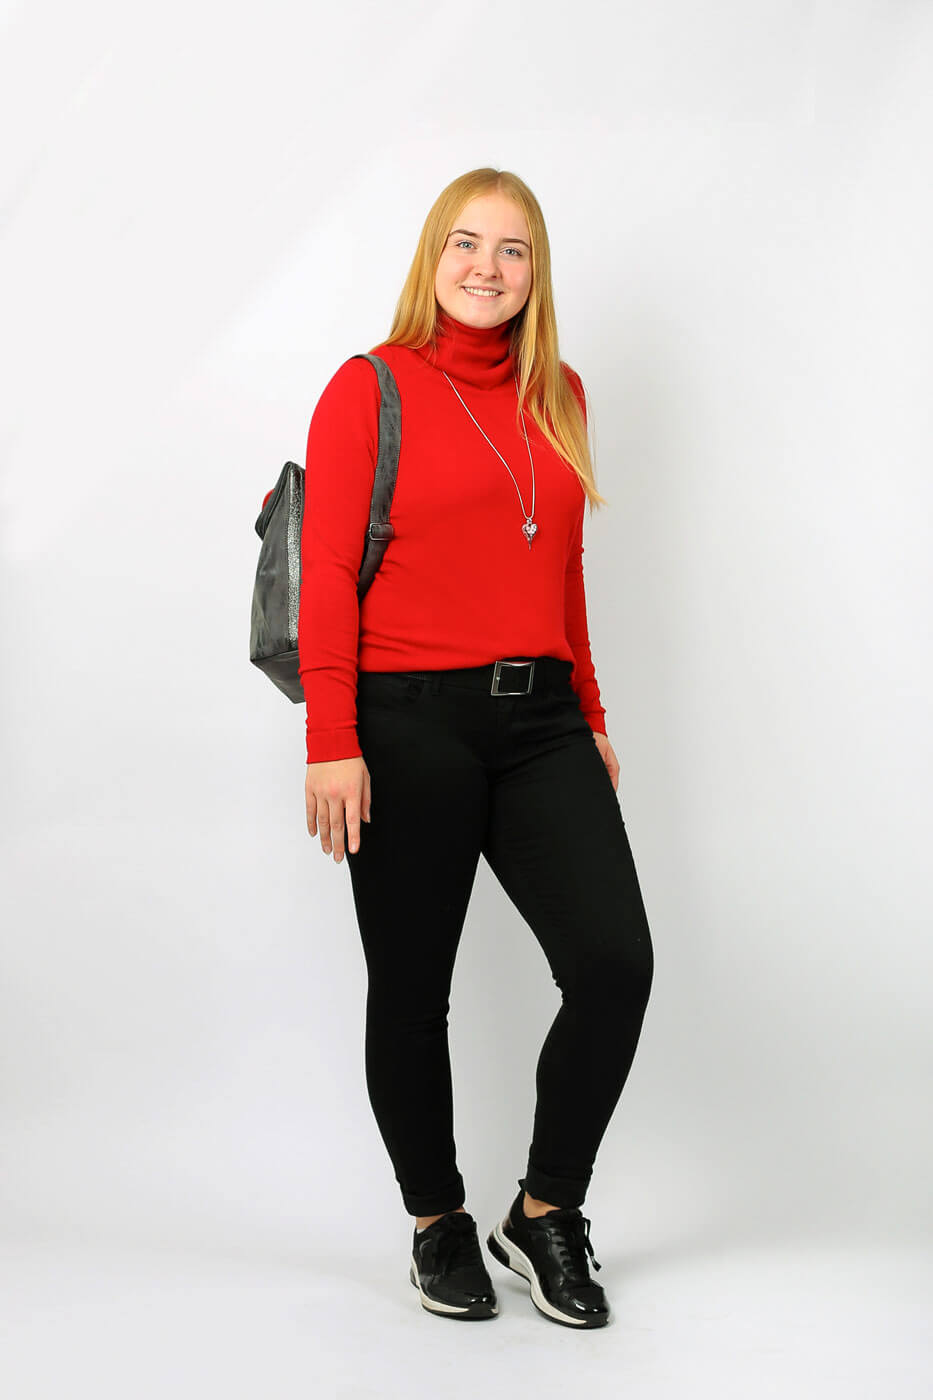 Weihnachtsfeier Outfit casual-chic